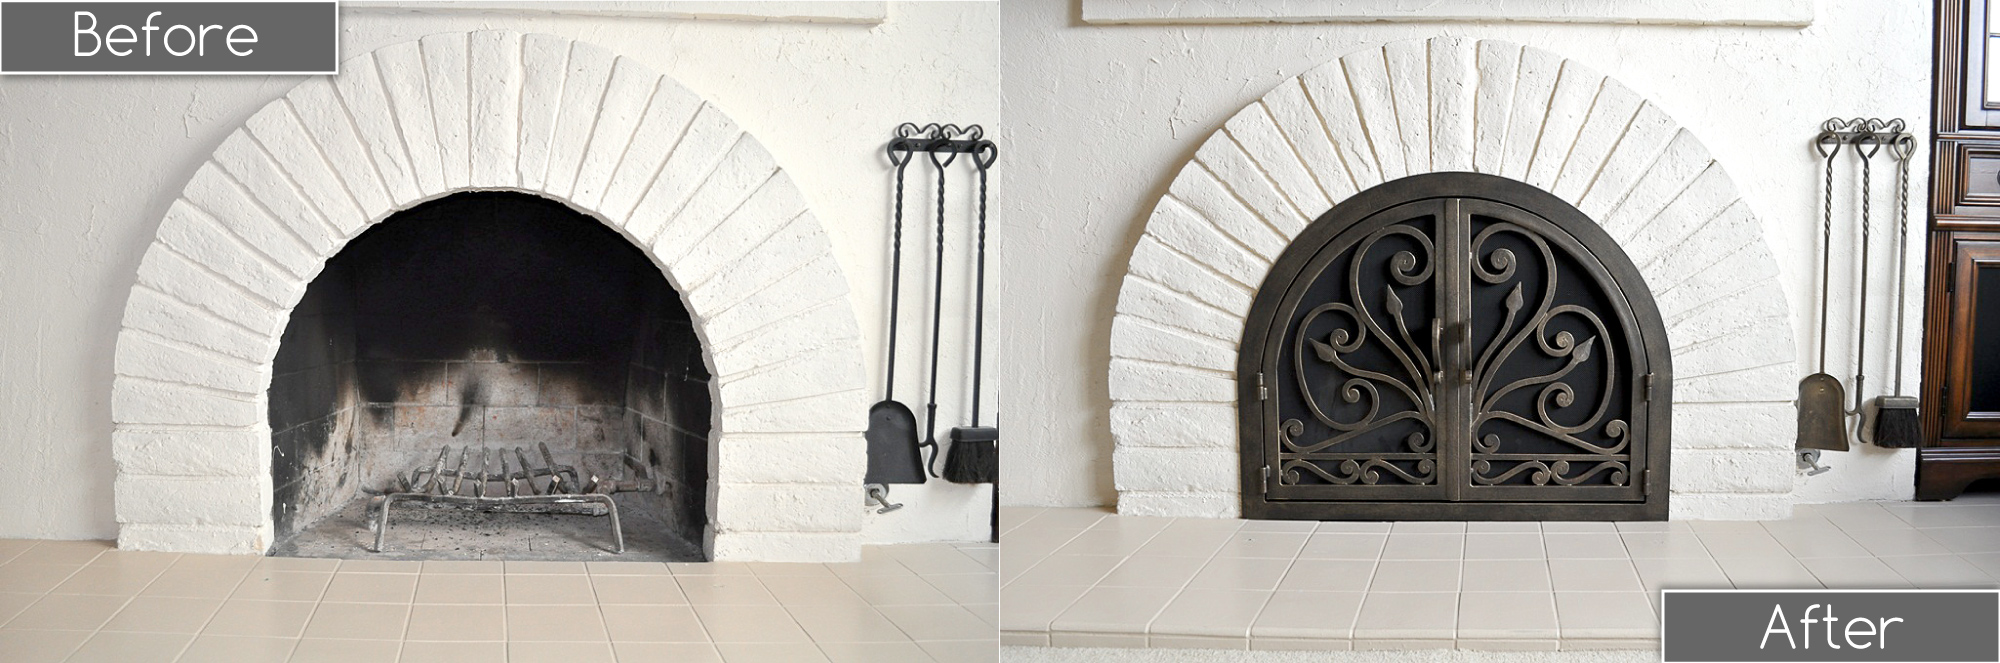 Arched Fireplace Doors Before and After